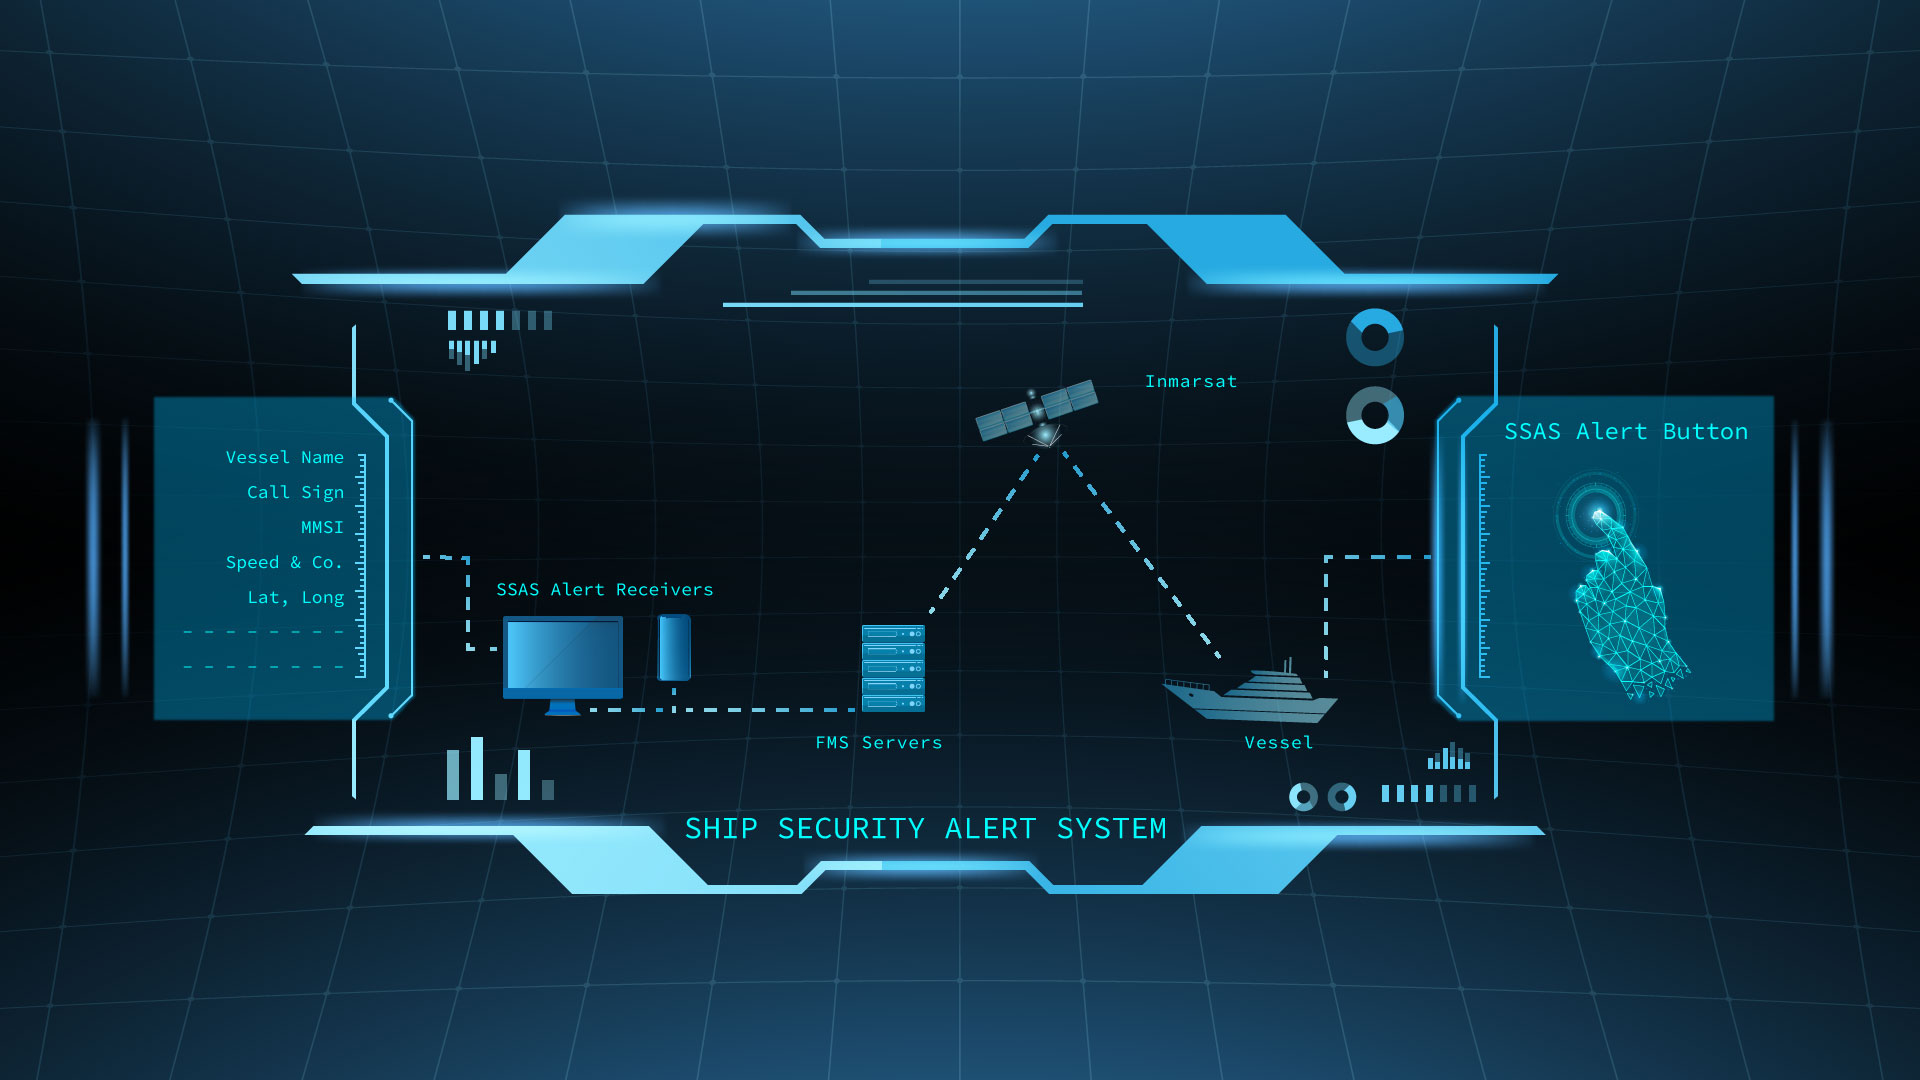 ship security alert system (SSAS)